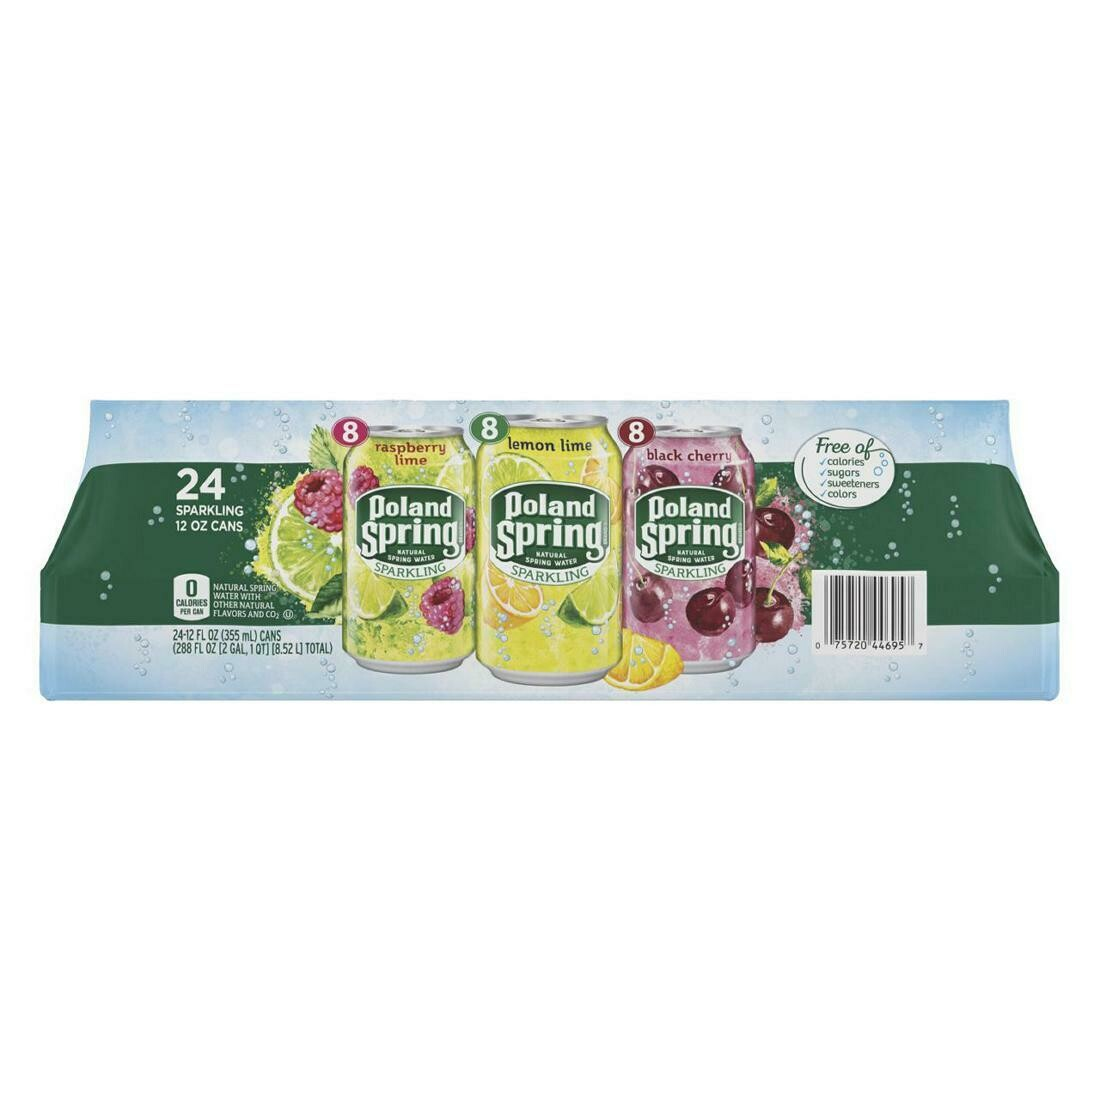 * Poland Spring Sparkling Water Variety Pack 24-12 Ounces